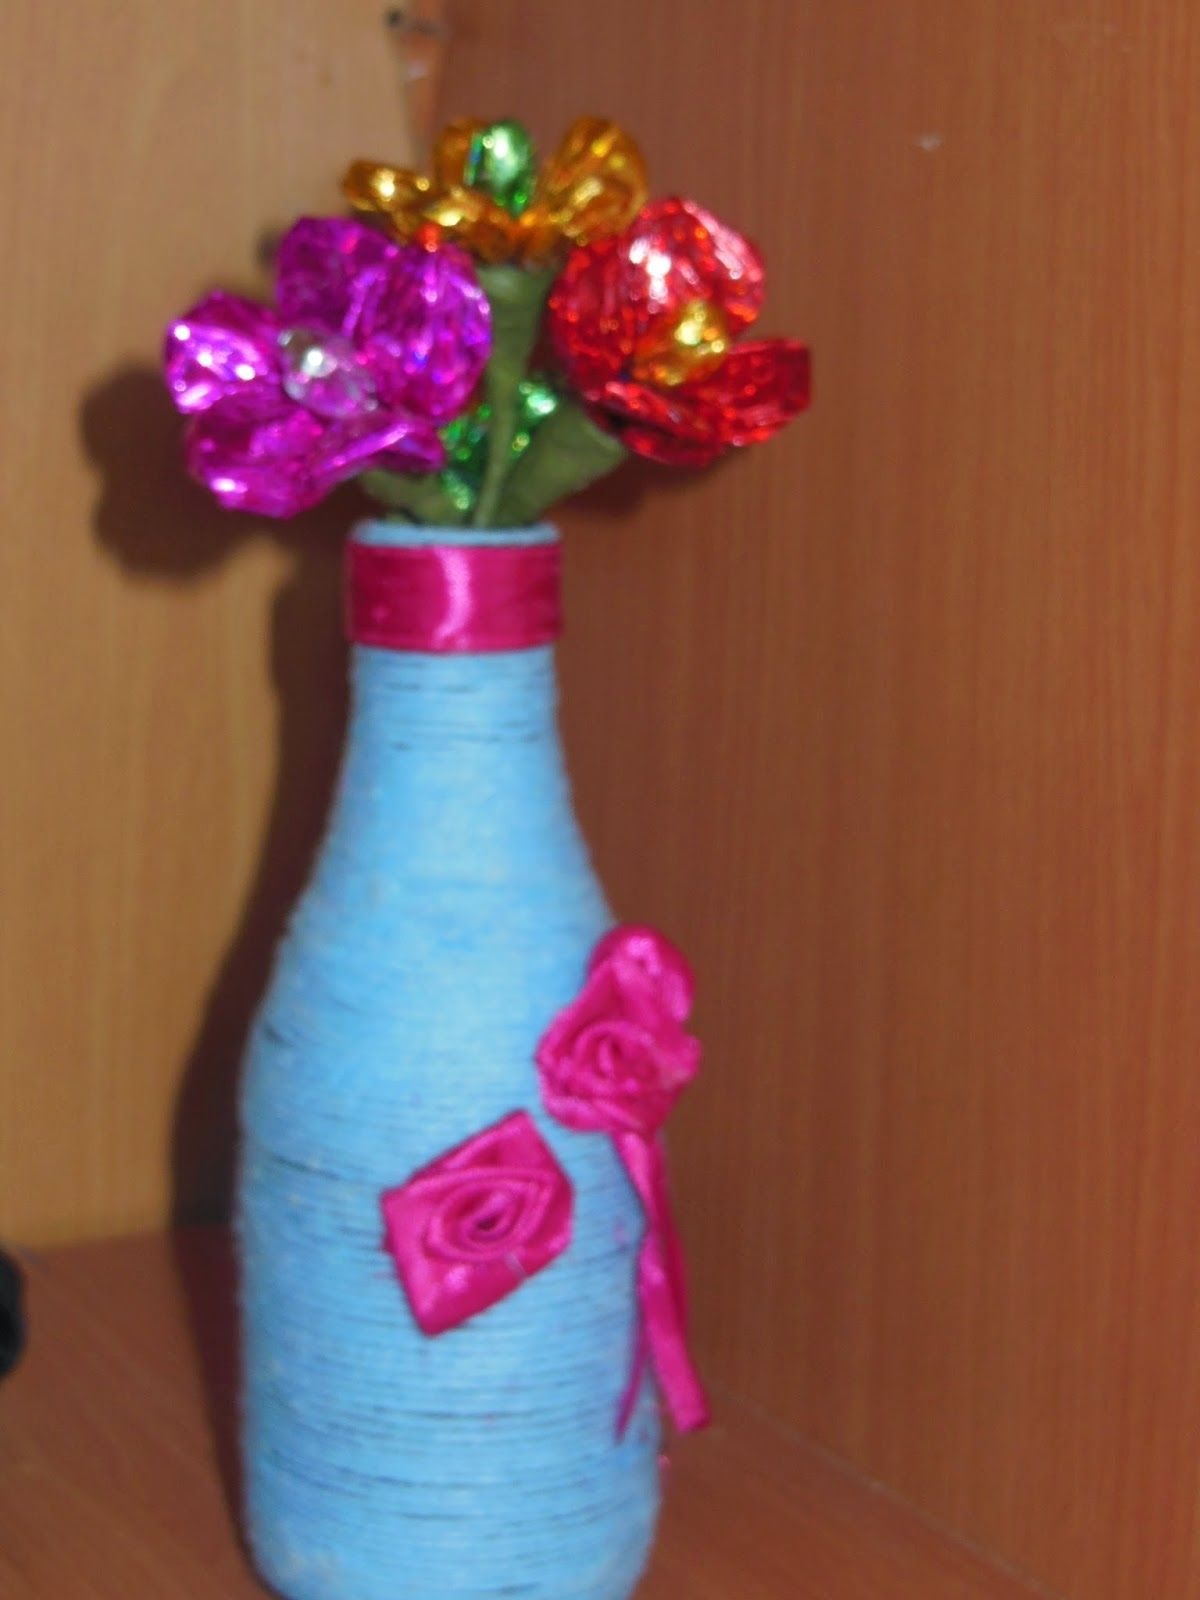 Flower Vase By Waste Material on shelf material, sculpture material, flower material, teapot material, water material, rococo material, quilt material, bird material, blanket material, box material, brick material, carpet material, valentine material, glass material, painting material, tablecloth material, basket material, terracotta material, rope material, heart material,